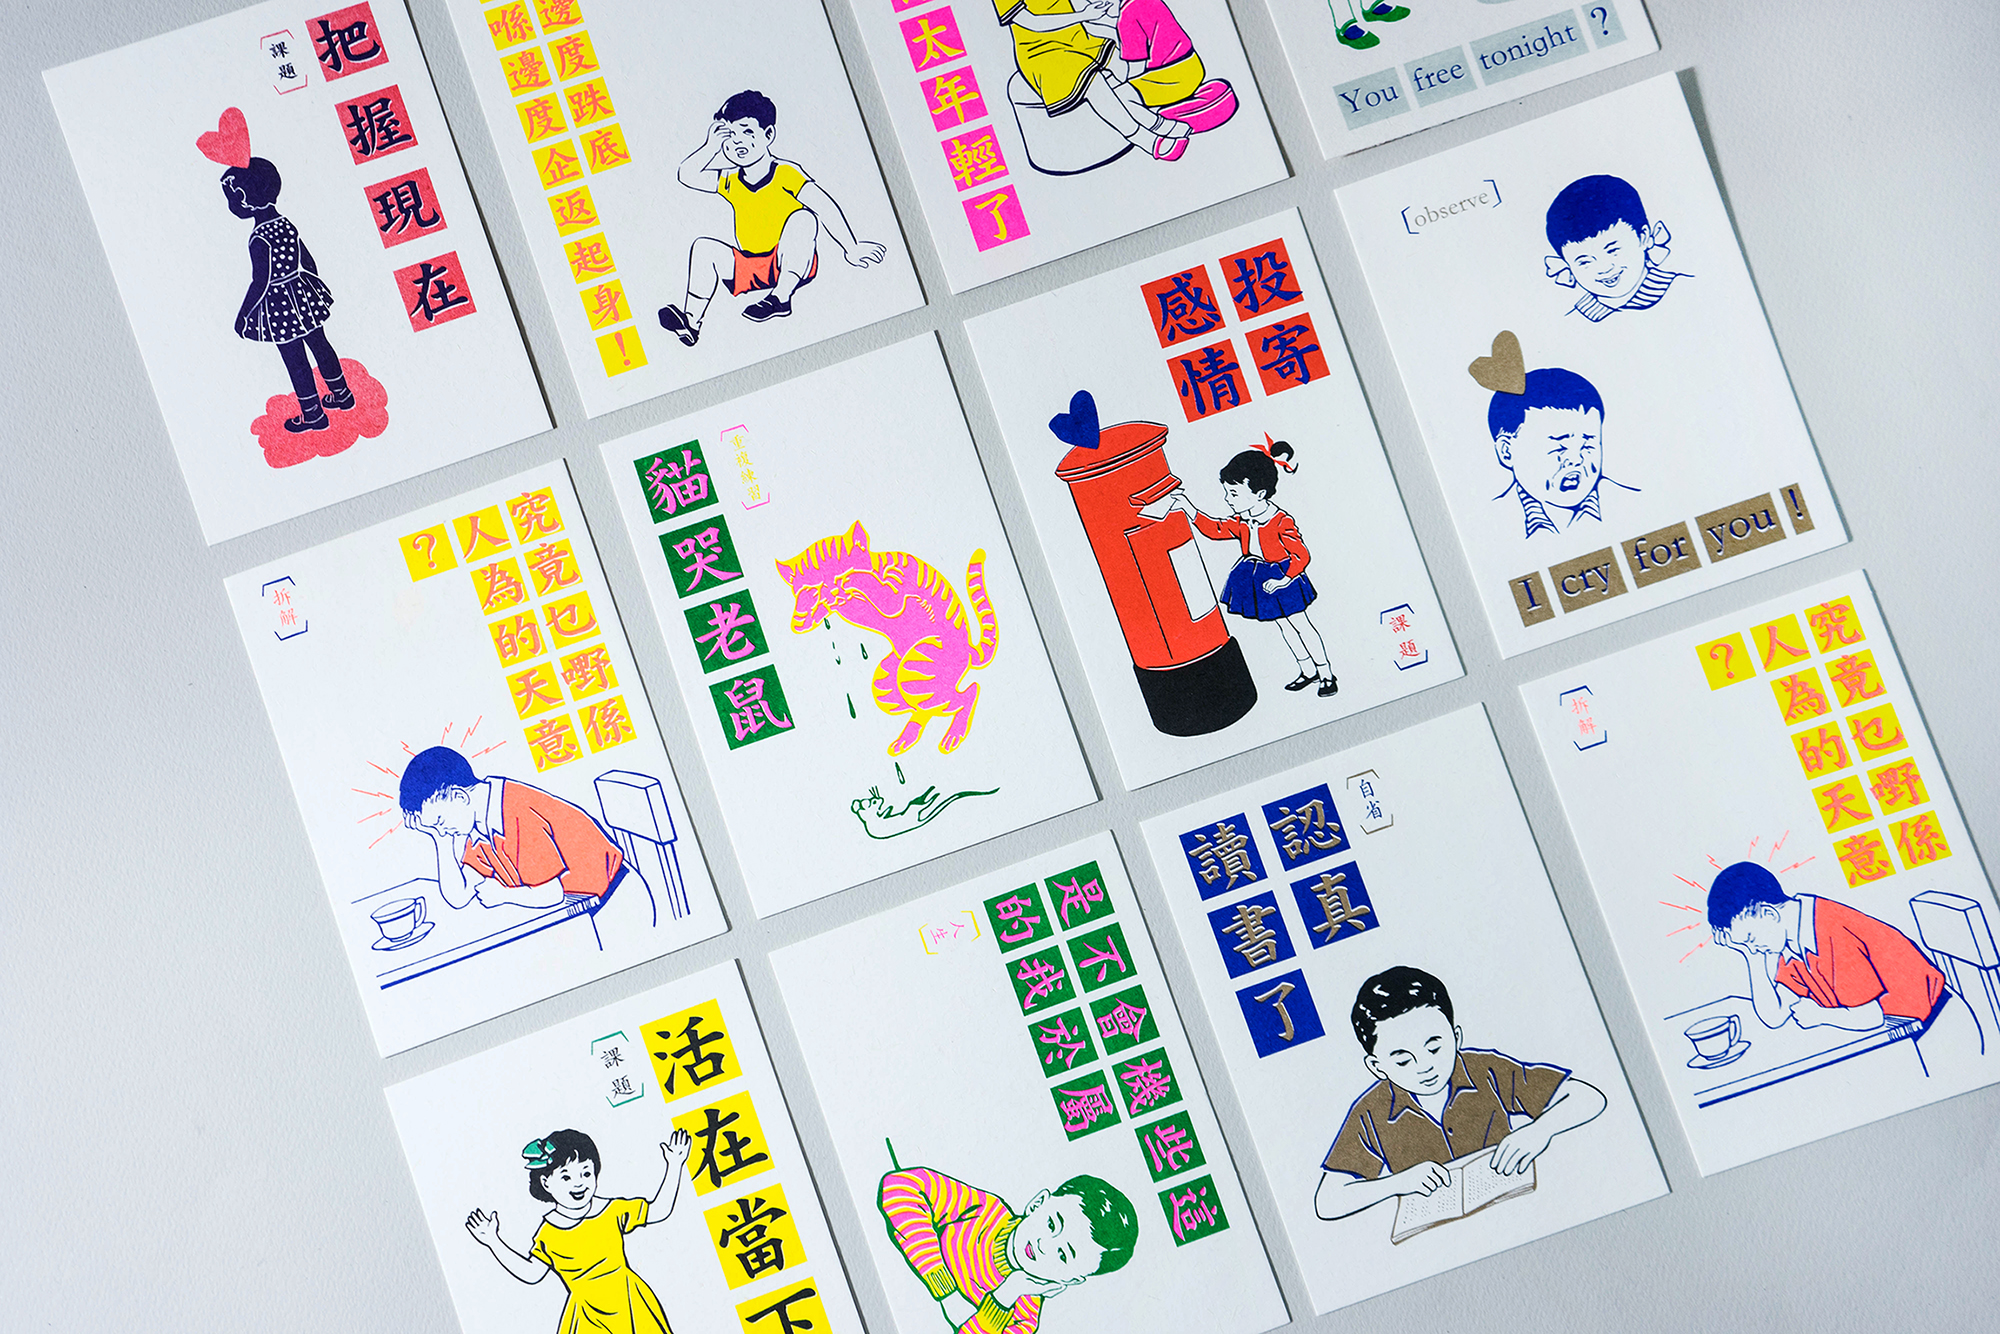 Postcards by Lau Chi Chung